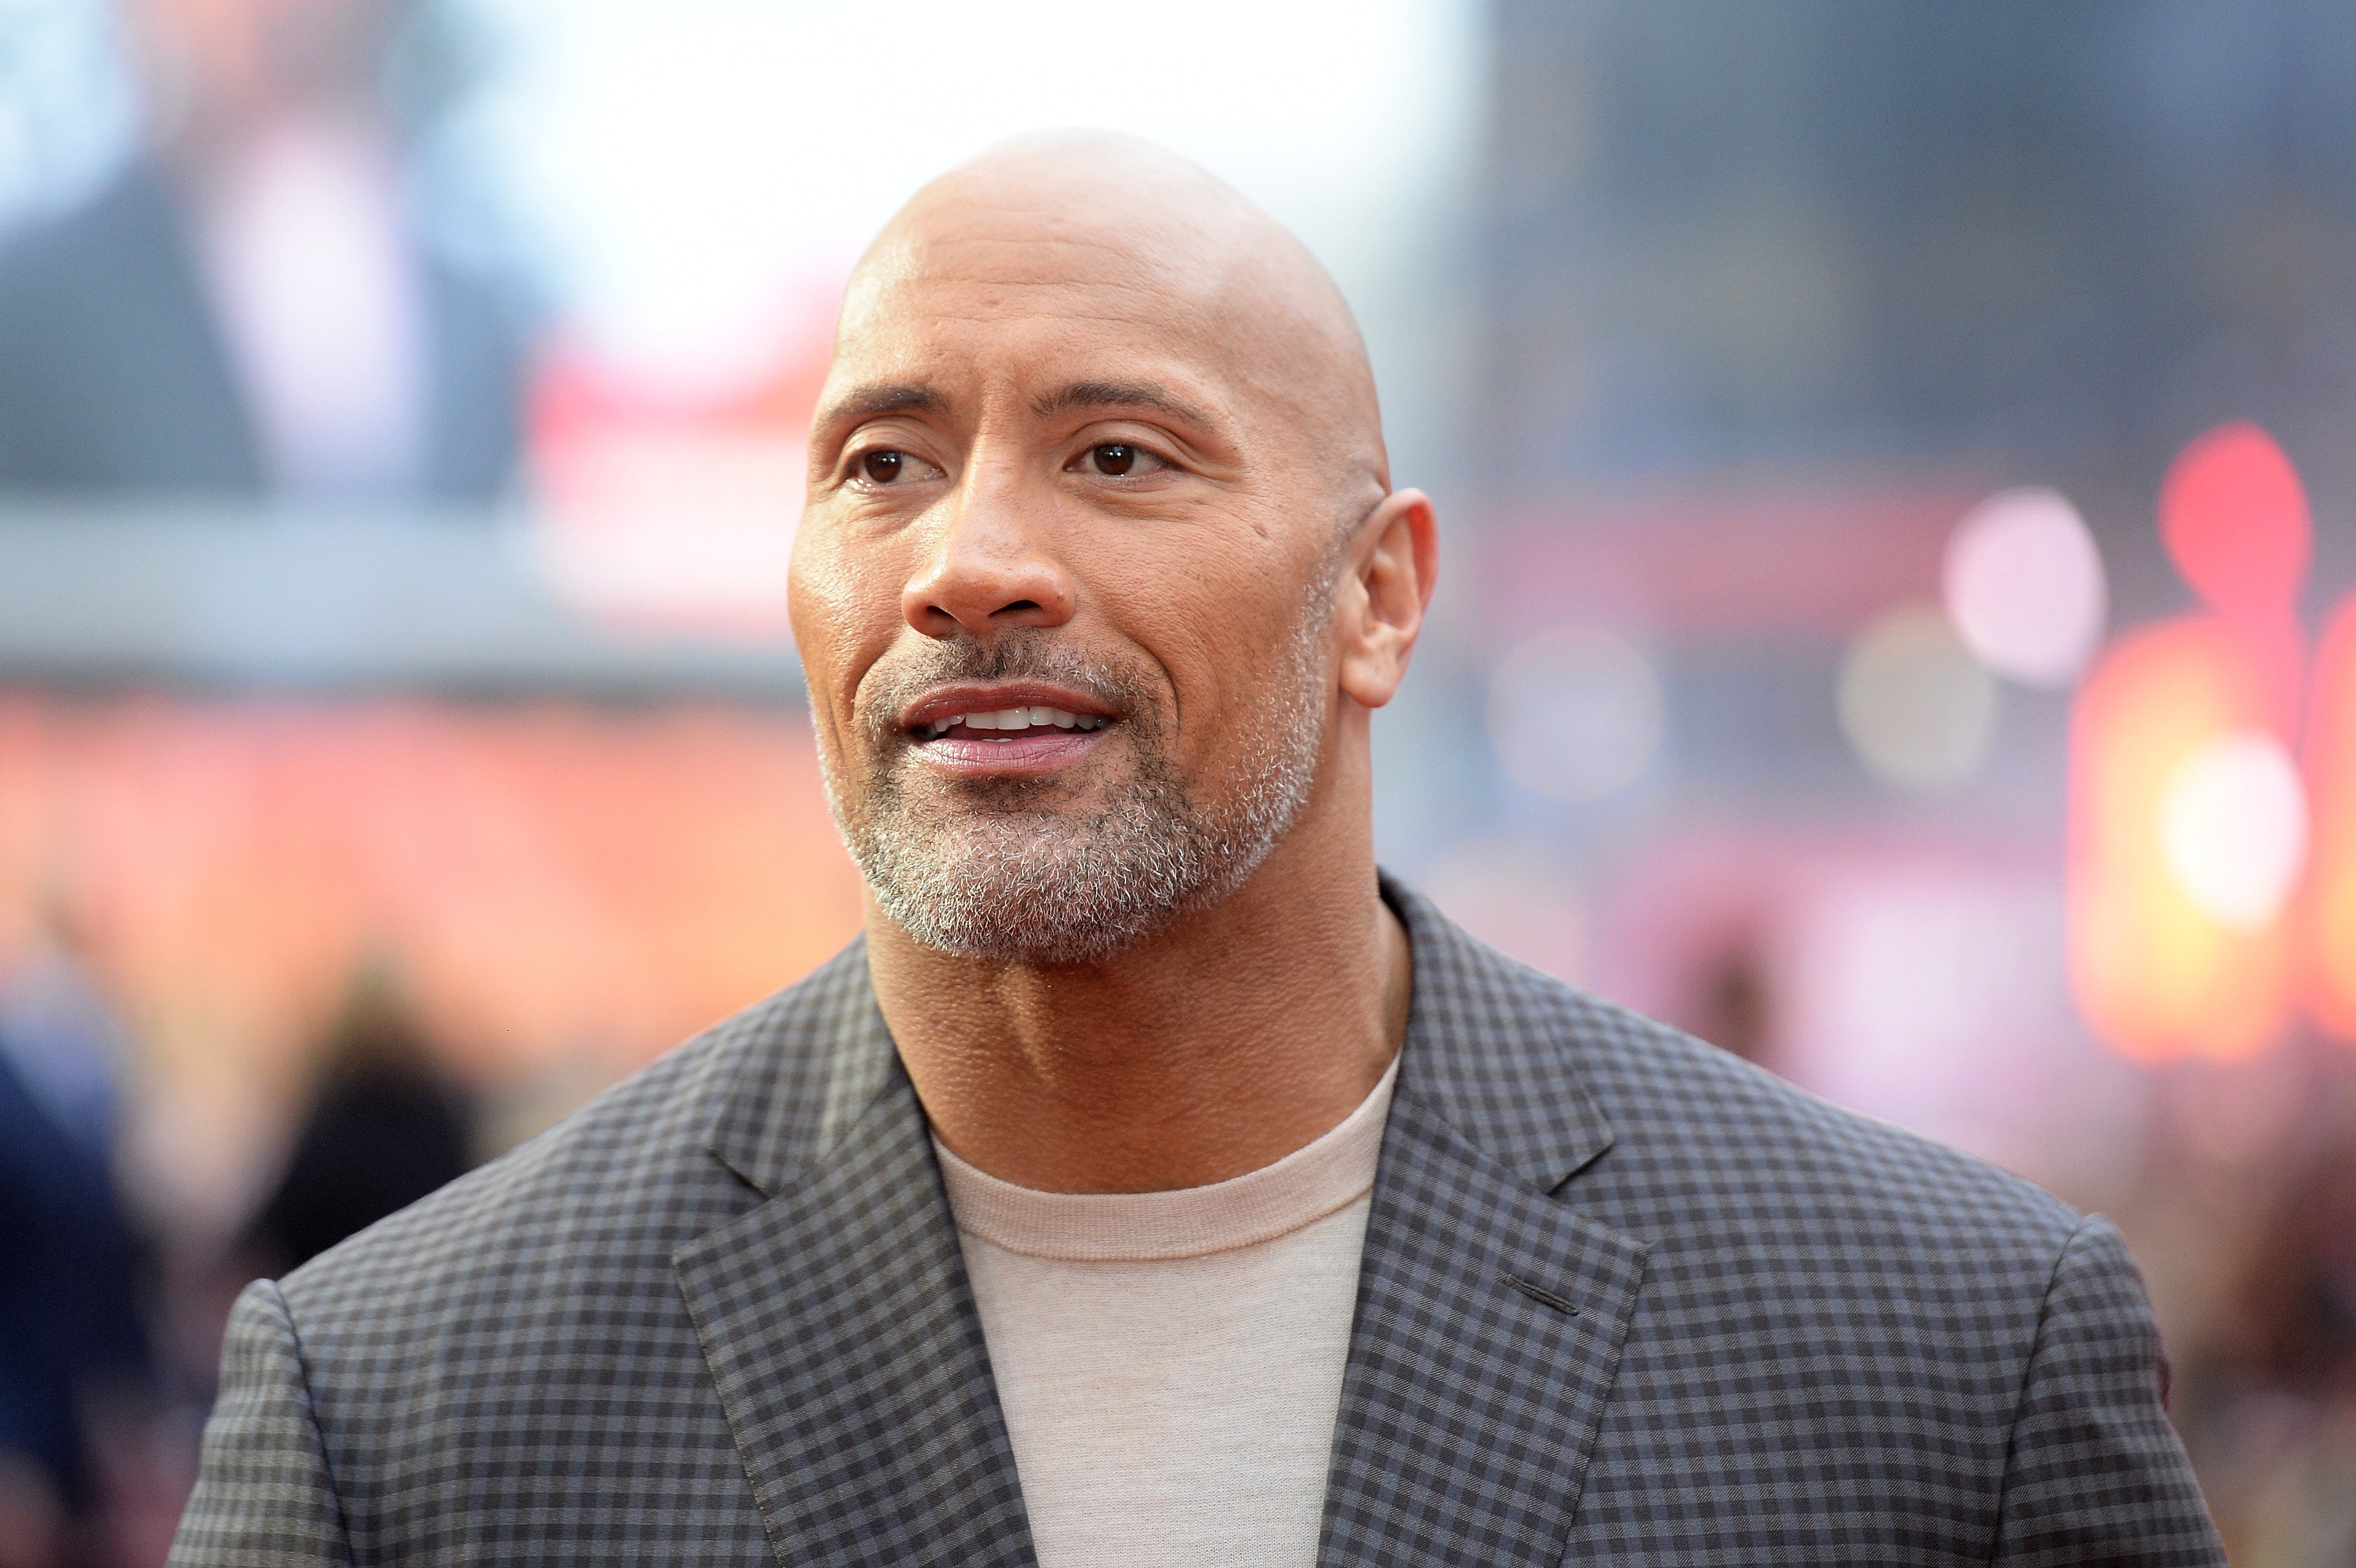 Dwayne Johnson attending the premiere of 'Rampage' in England. Source   Photo: Getty Images